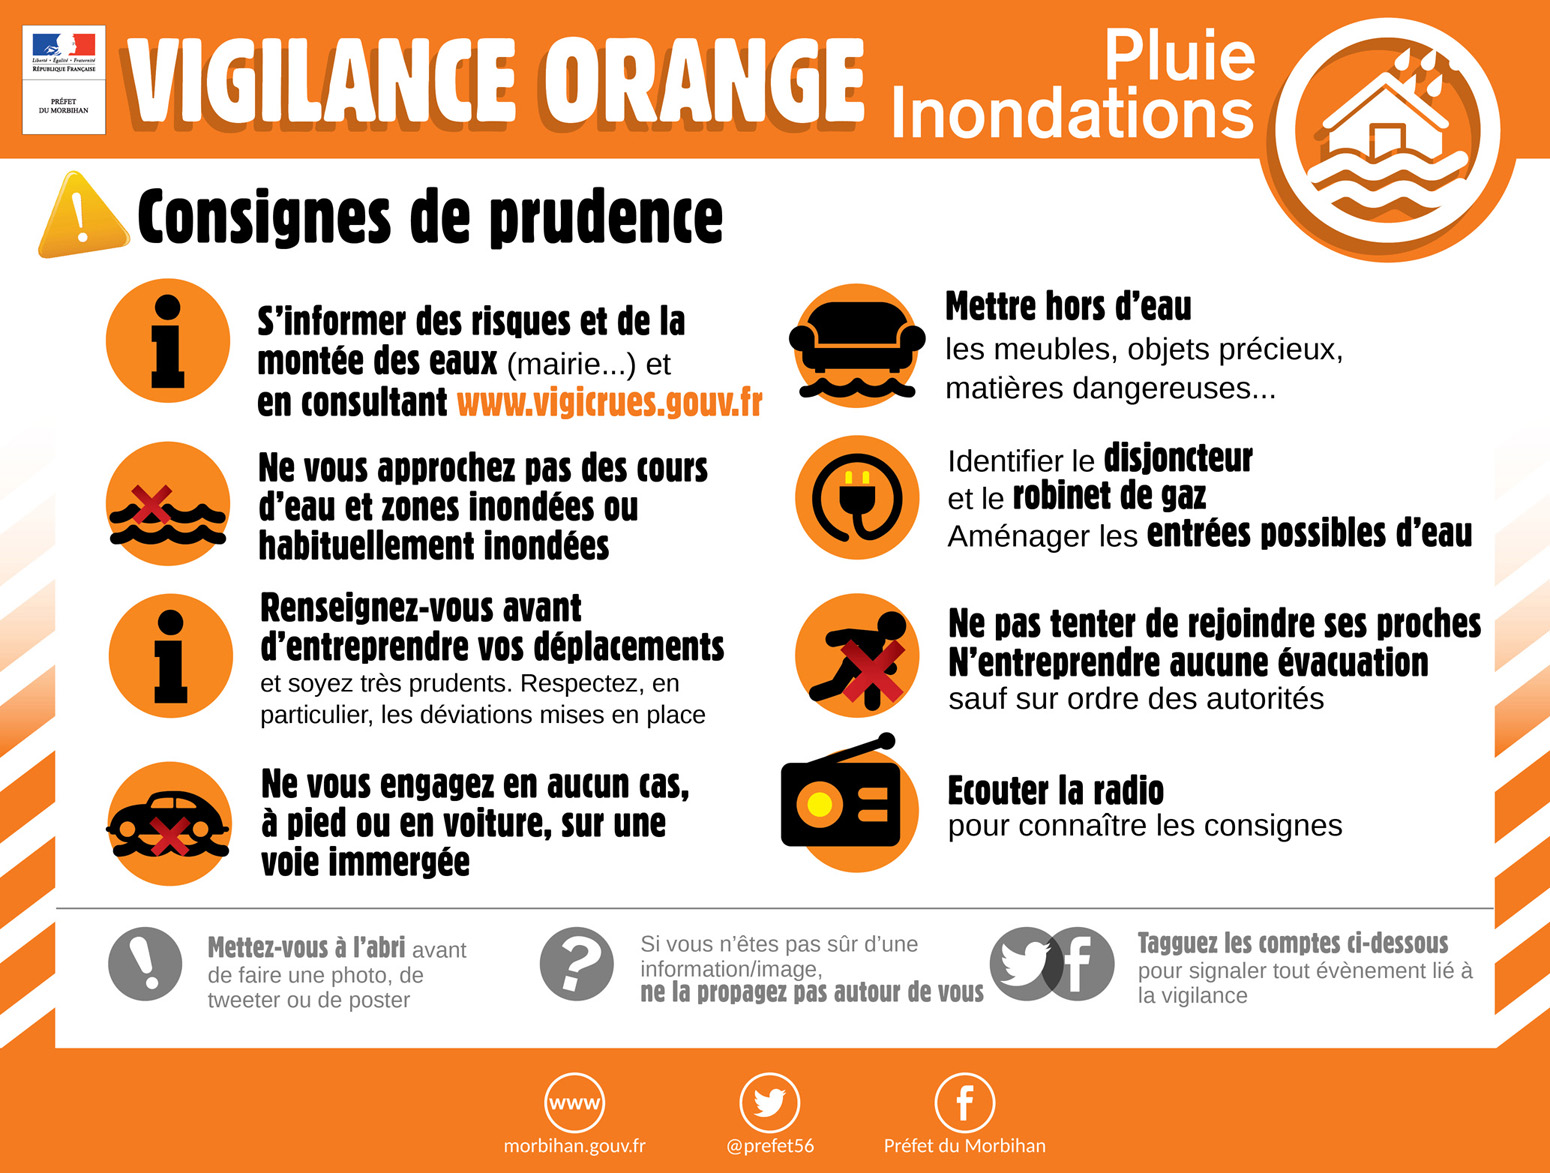 Vigilance orange vent violent – MàJ 15/02/20